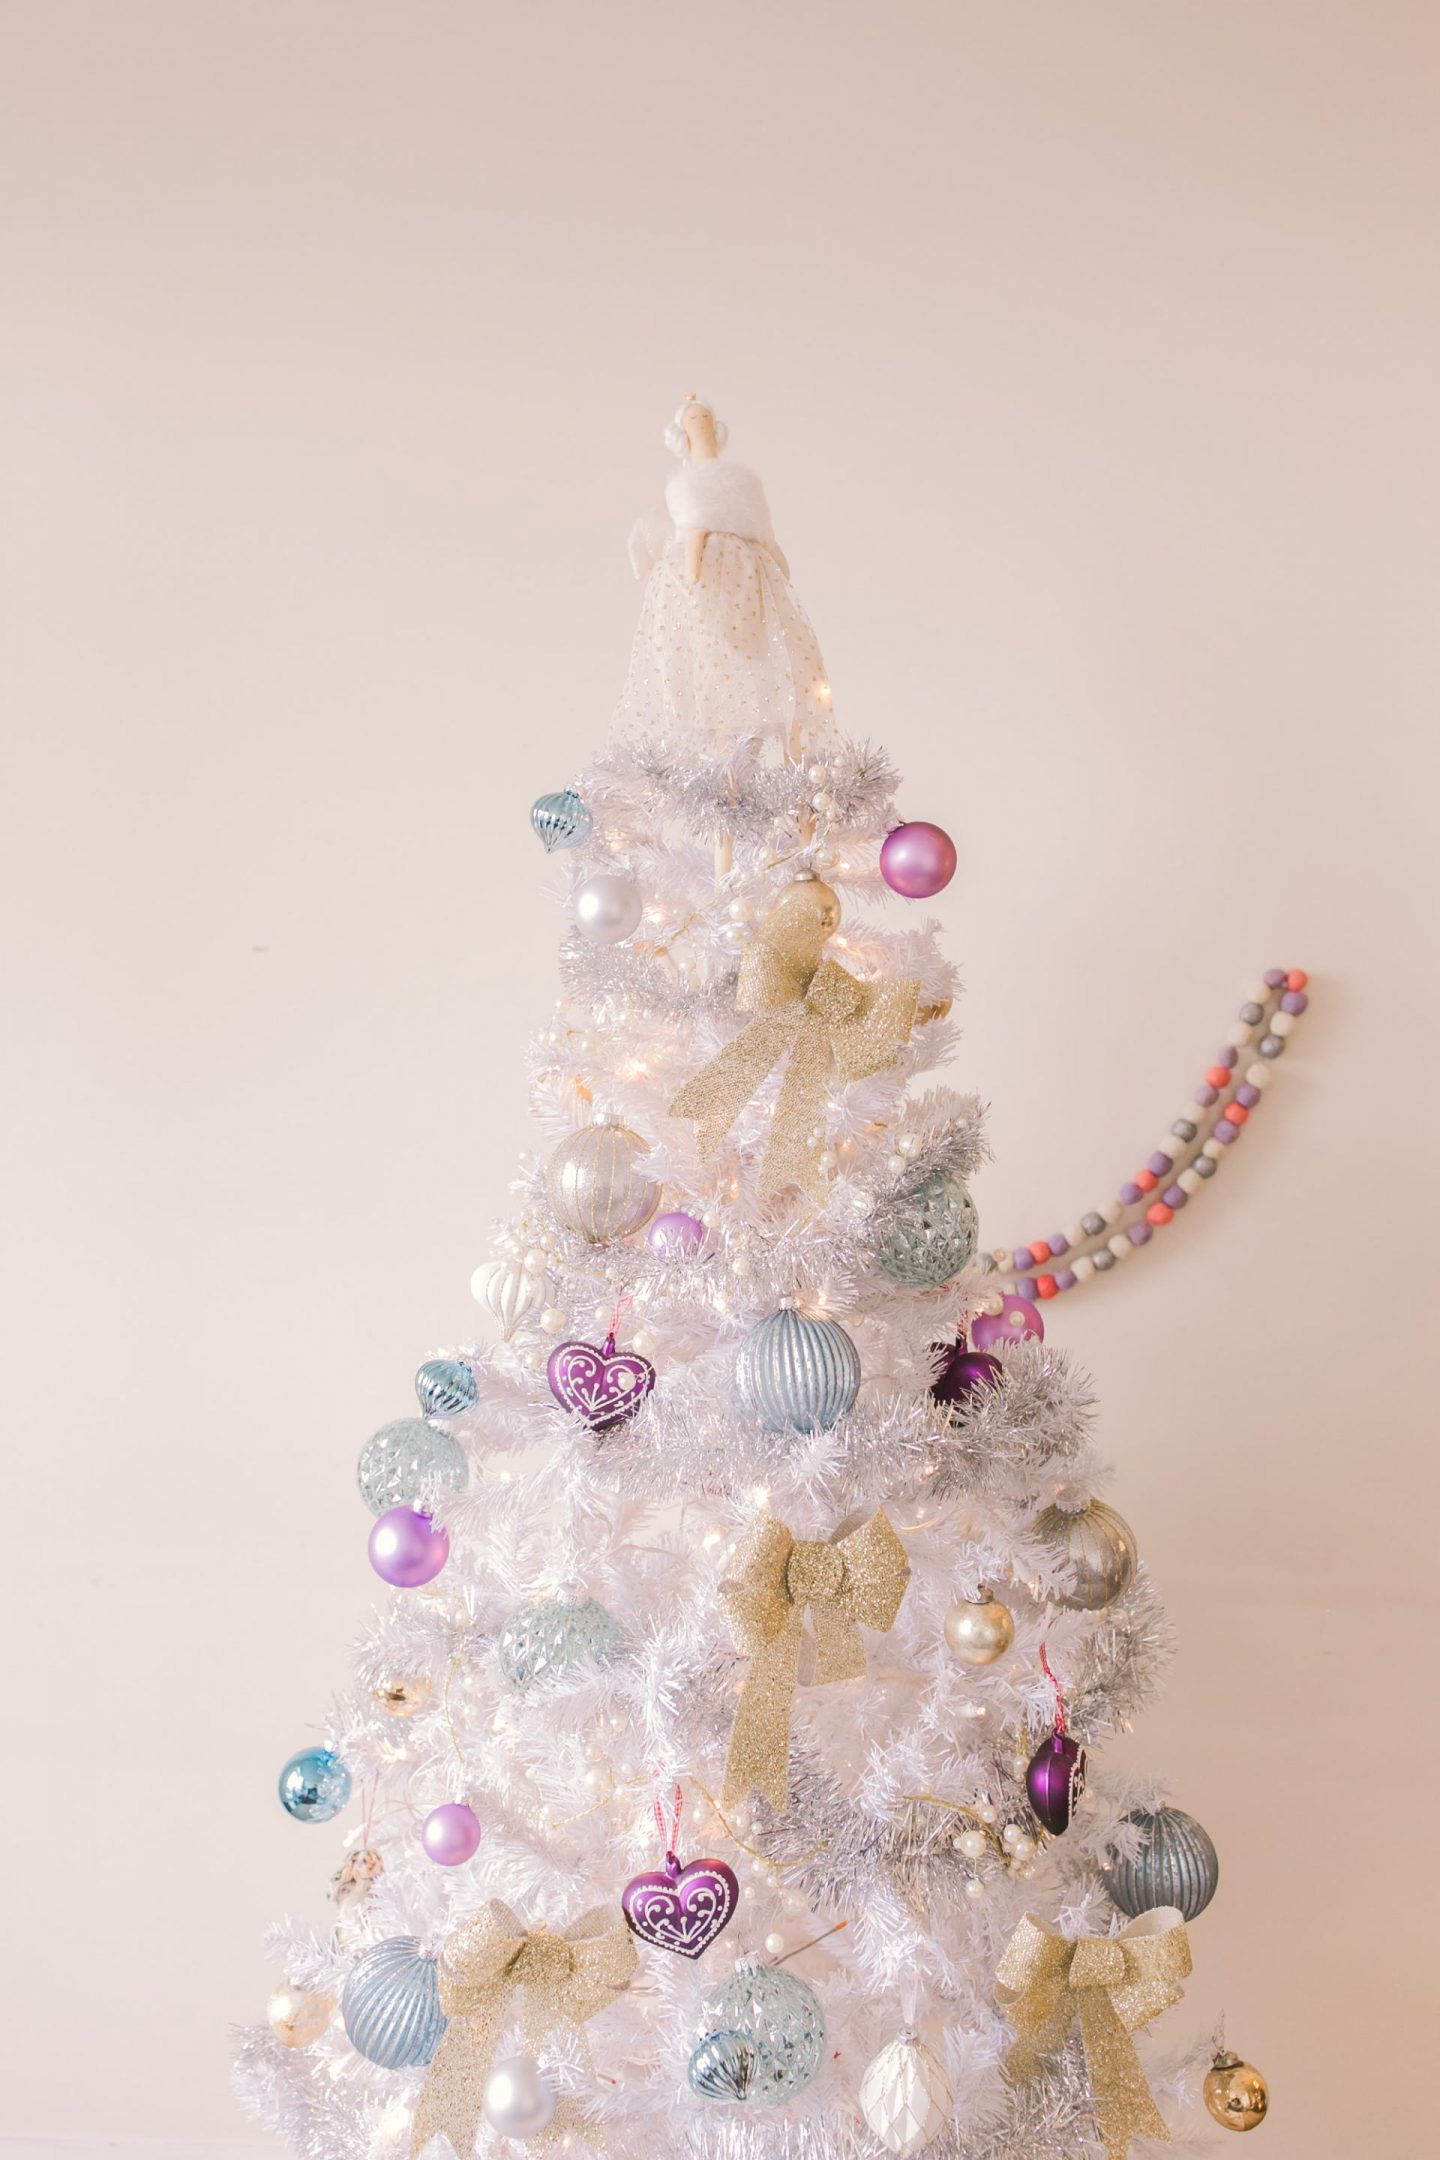 Glam Christmas tree decorated with glass ornaments,gold bows, metallic garland, and sparkle!